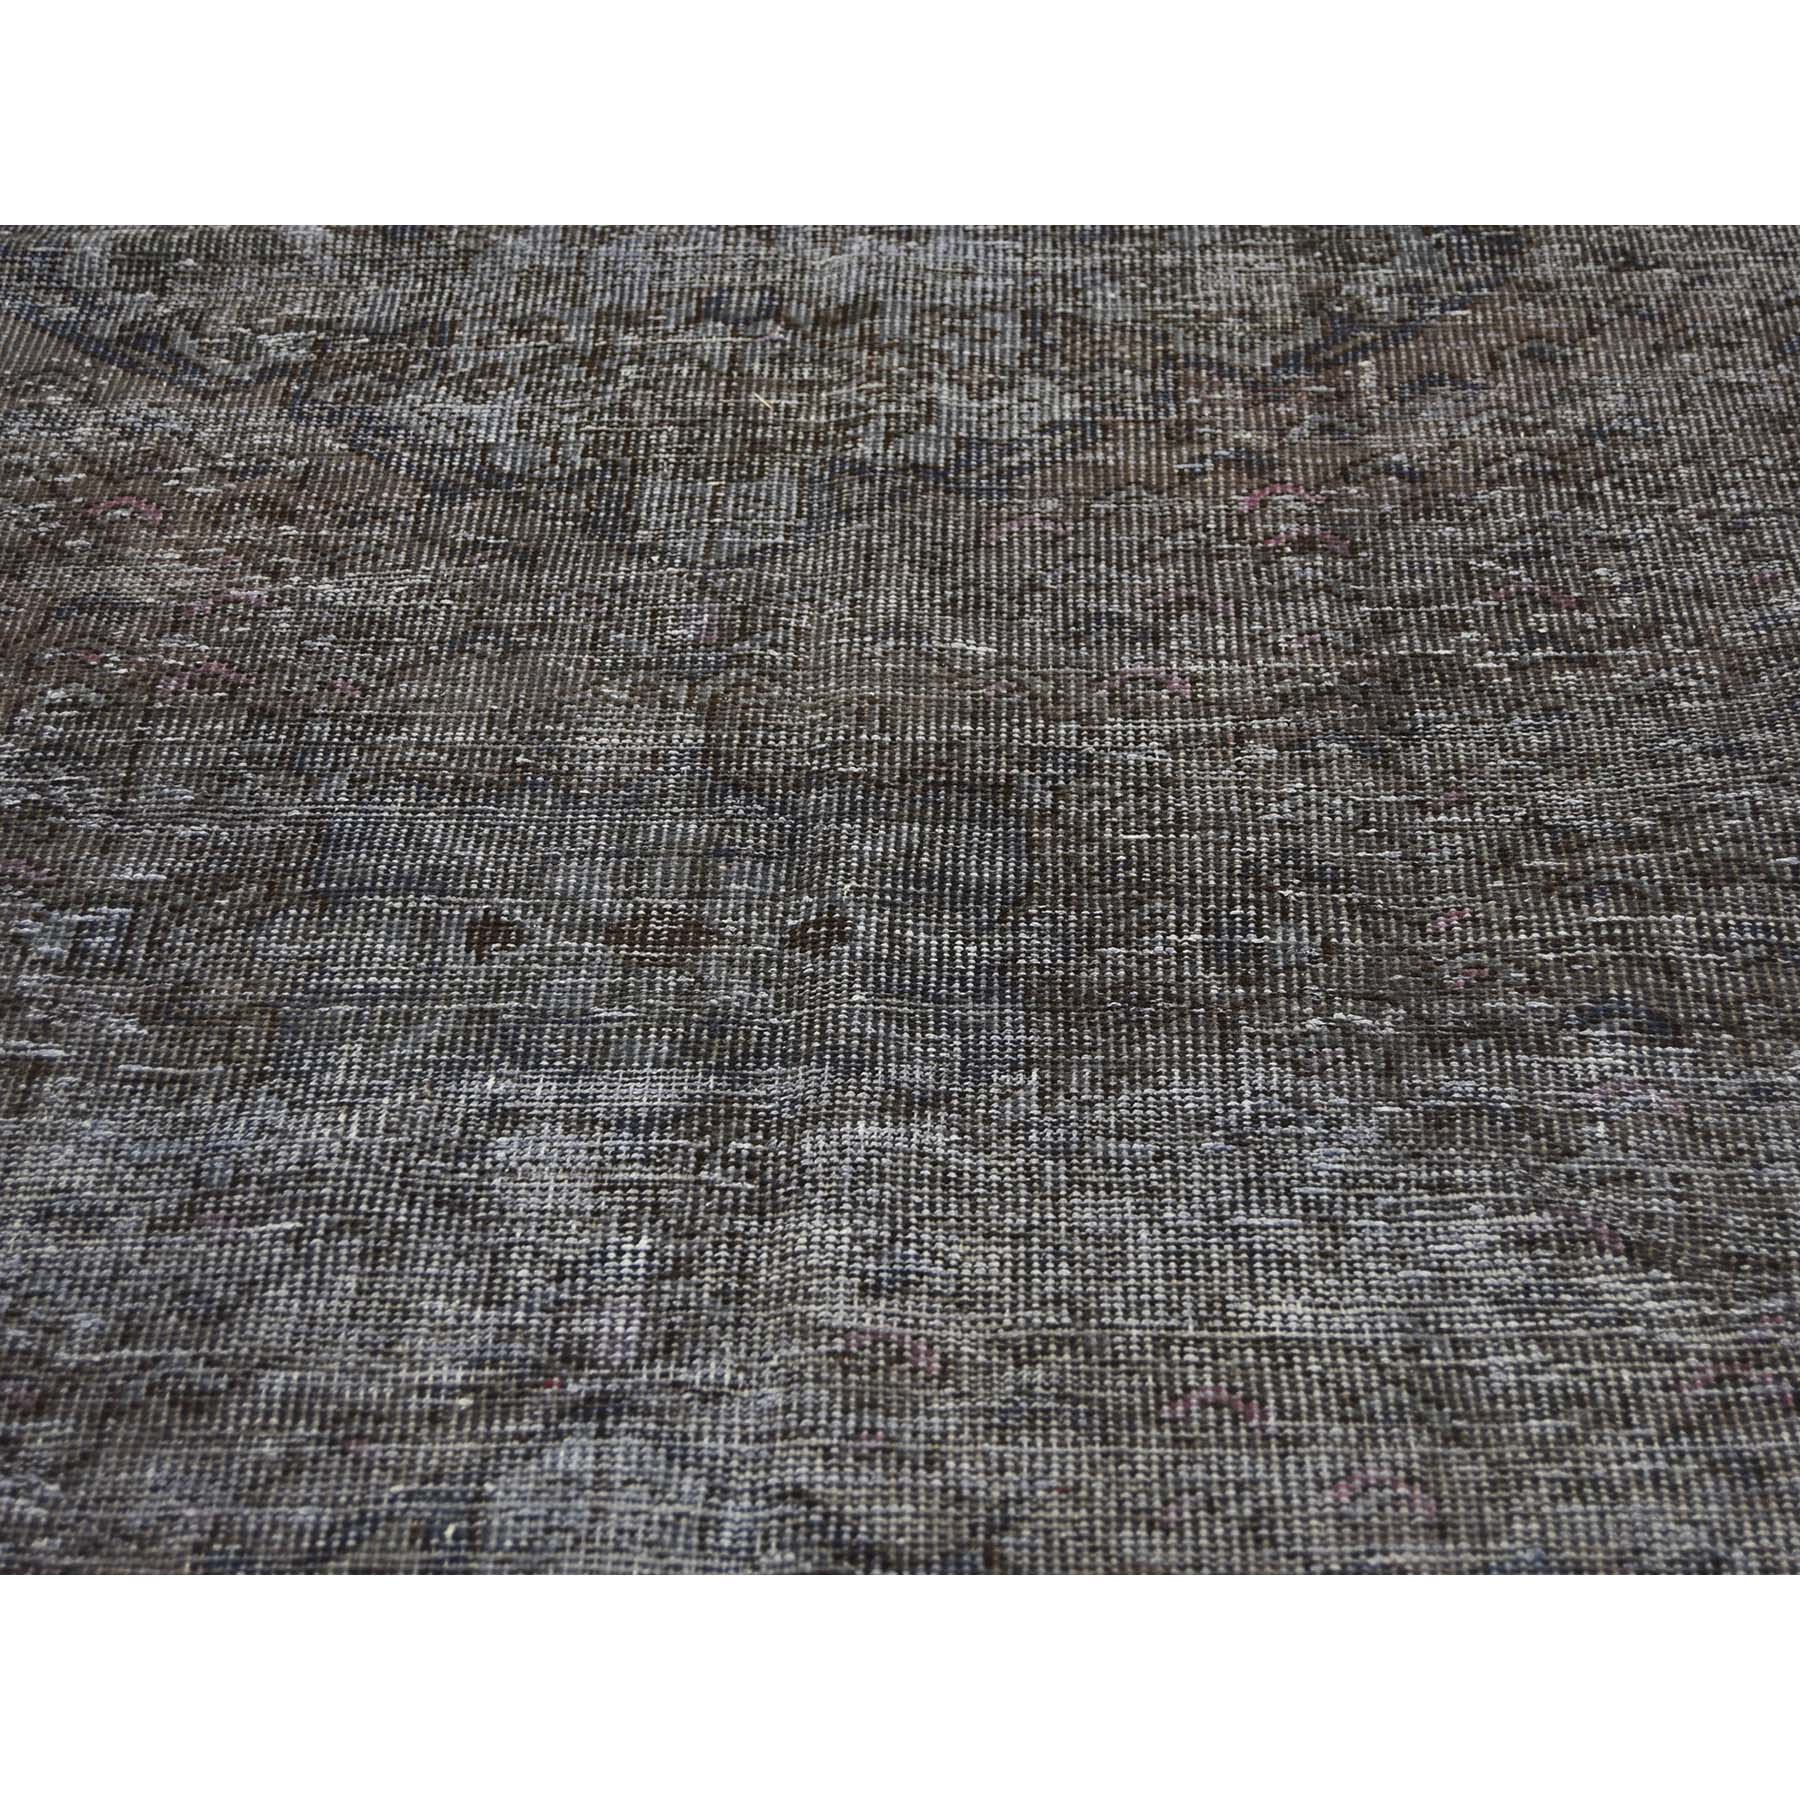 5-3--x9-7-- Hand Knotted Pure Wool Vintage Overdyed Persian Tabriz Wide Runner Rug